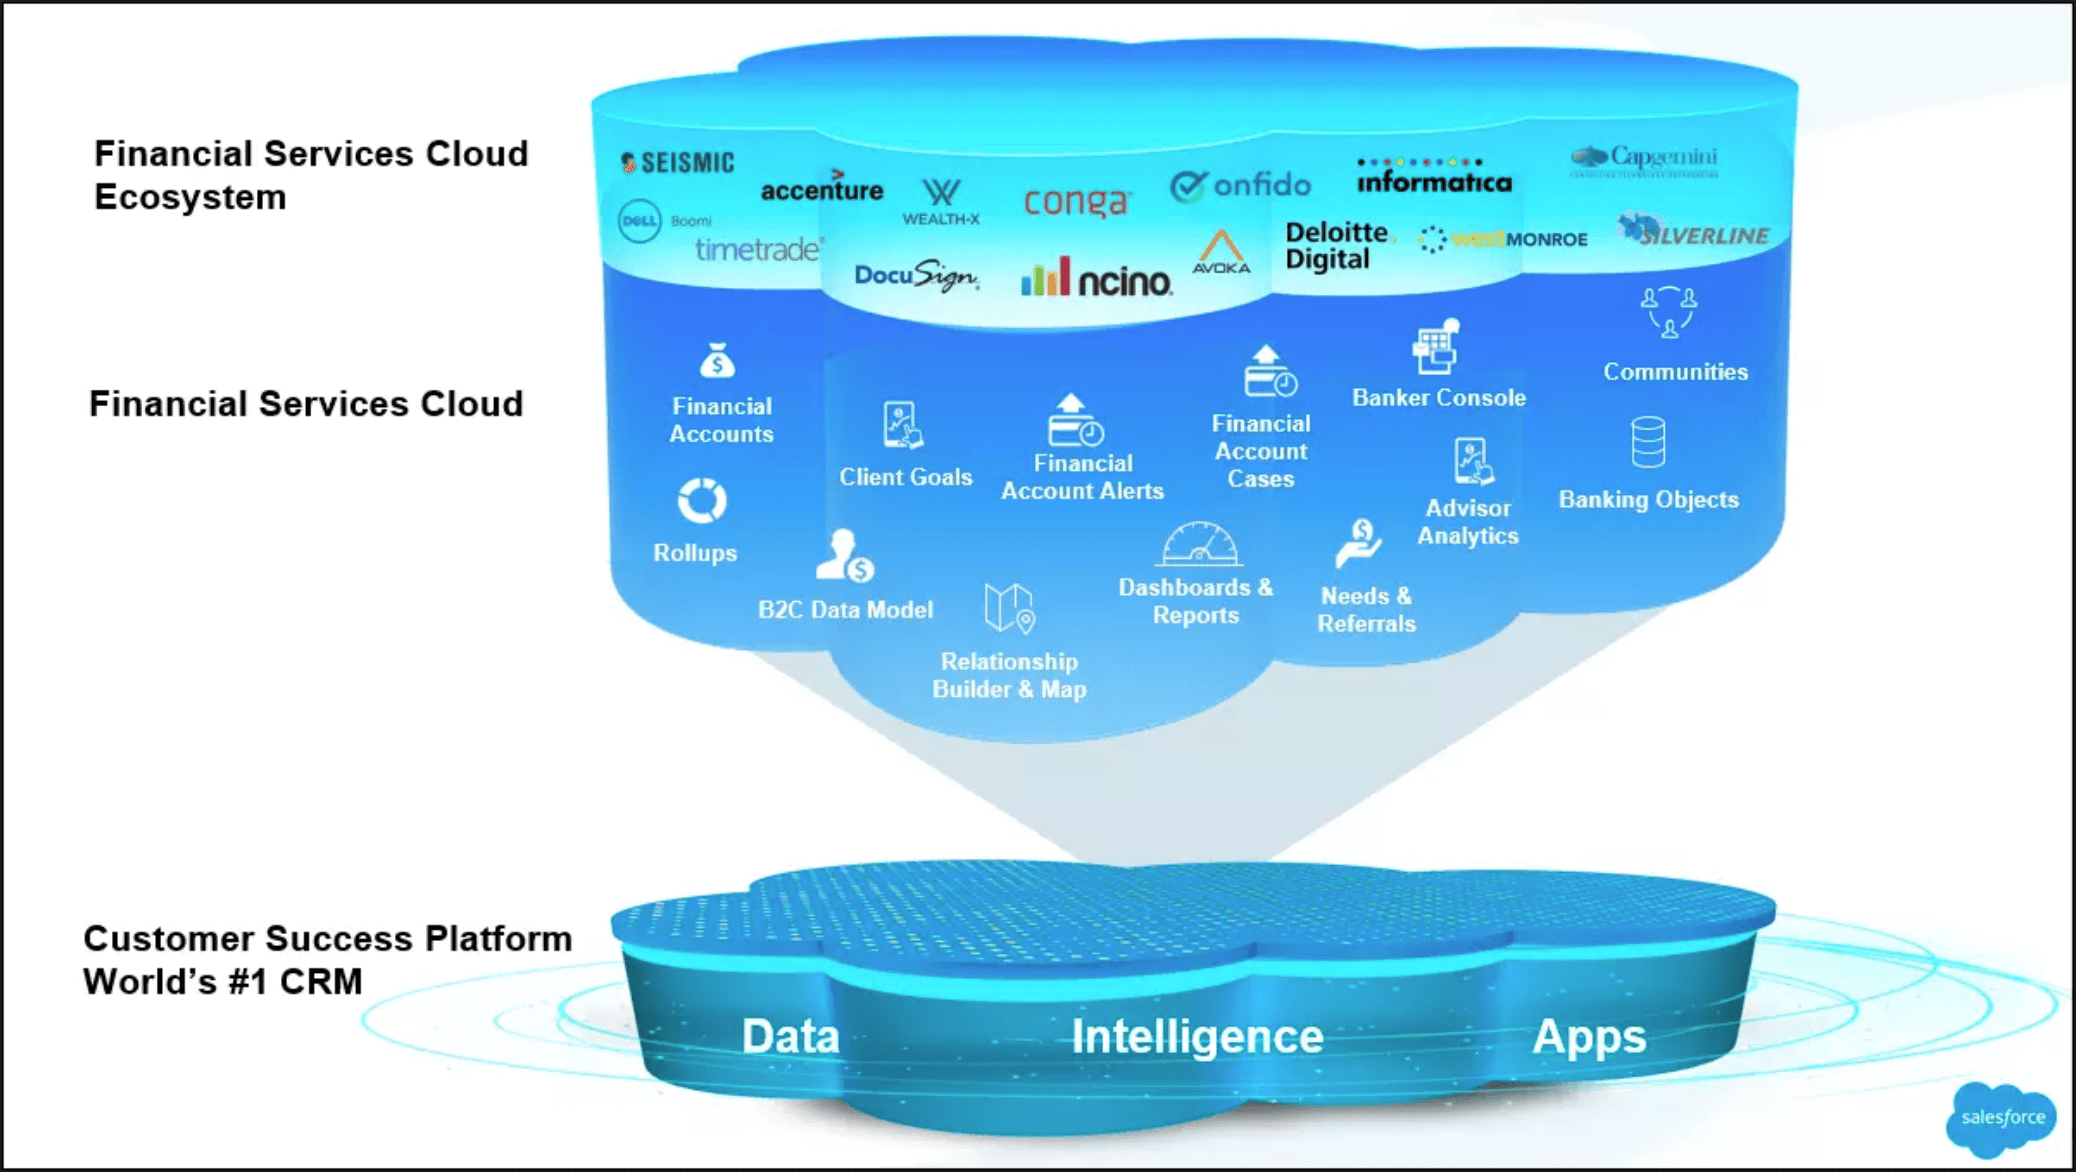 Financial Services Cloud Ecosystem